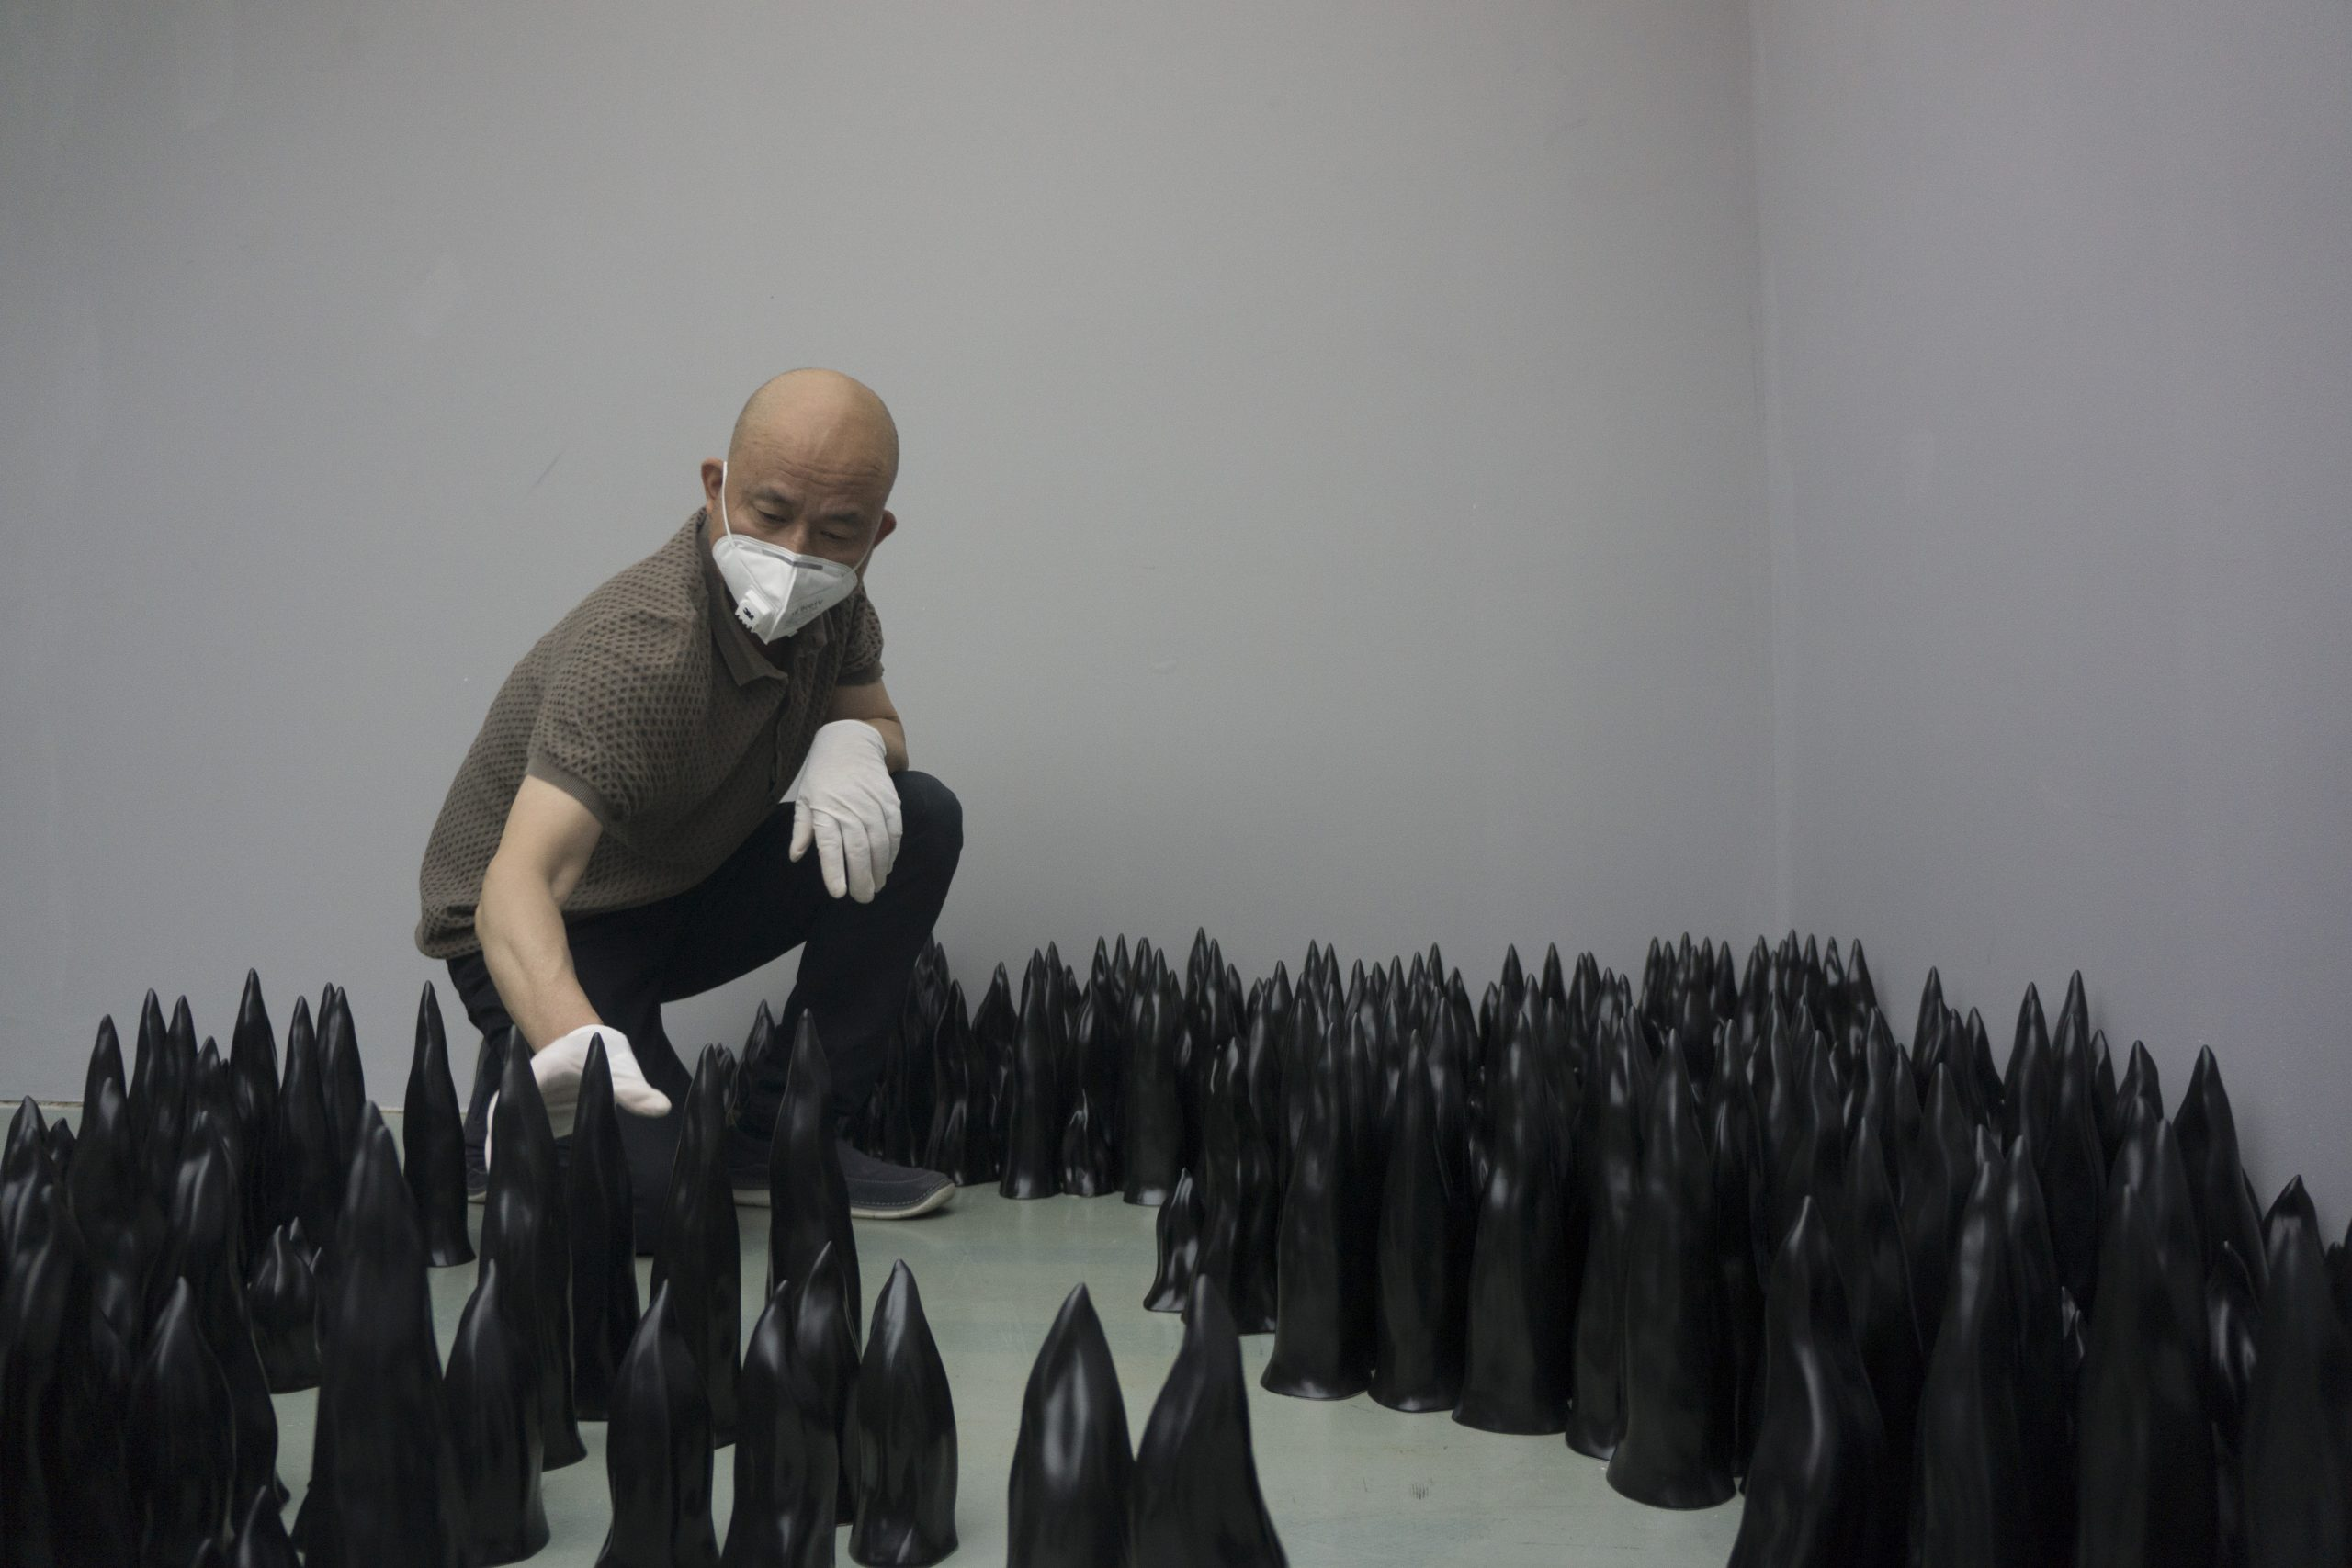 Liu Jianhua installing the work Black Flame (2017) for an exhibition at the Today Art Museum, Beijing. Photo courtesy of the artist.